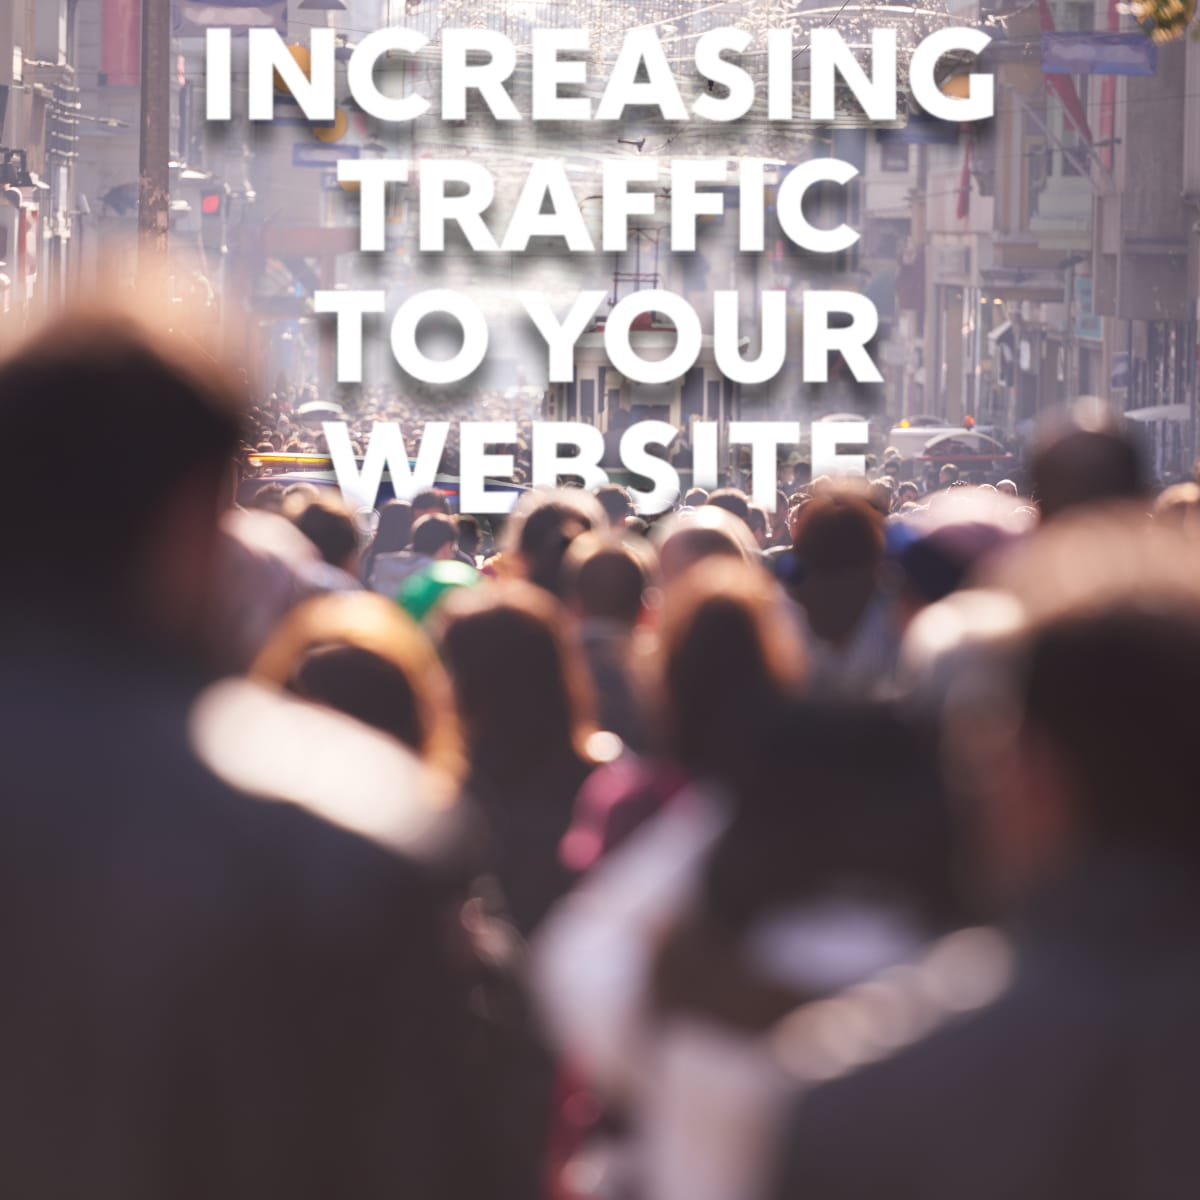 How Can I Increase Traffic To My Website